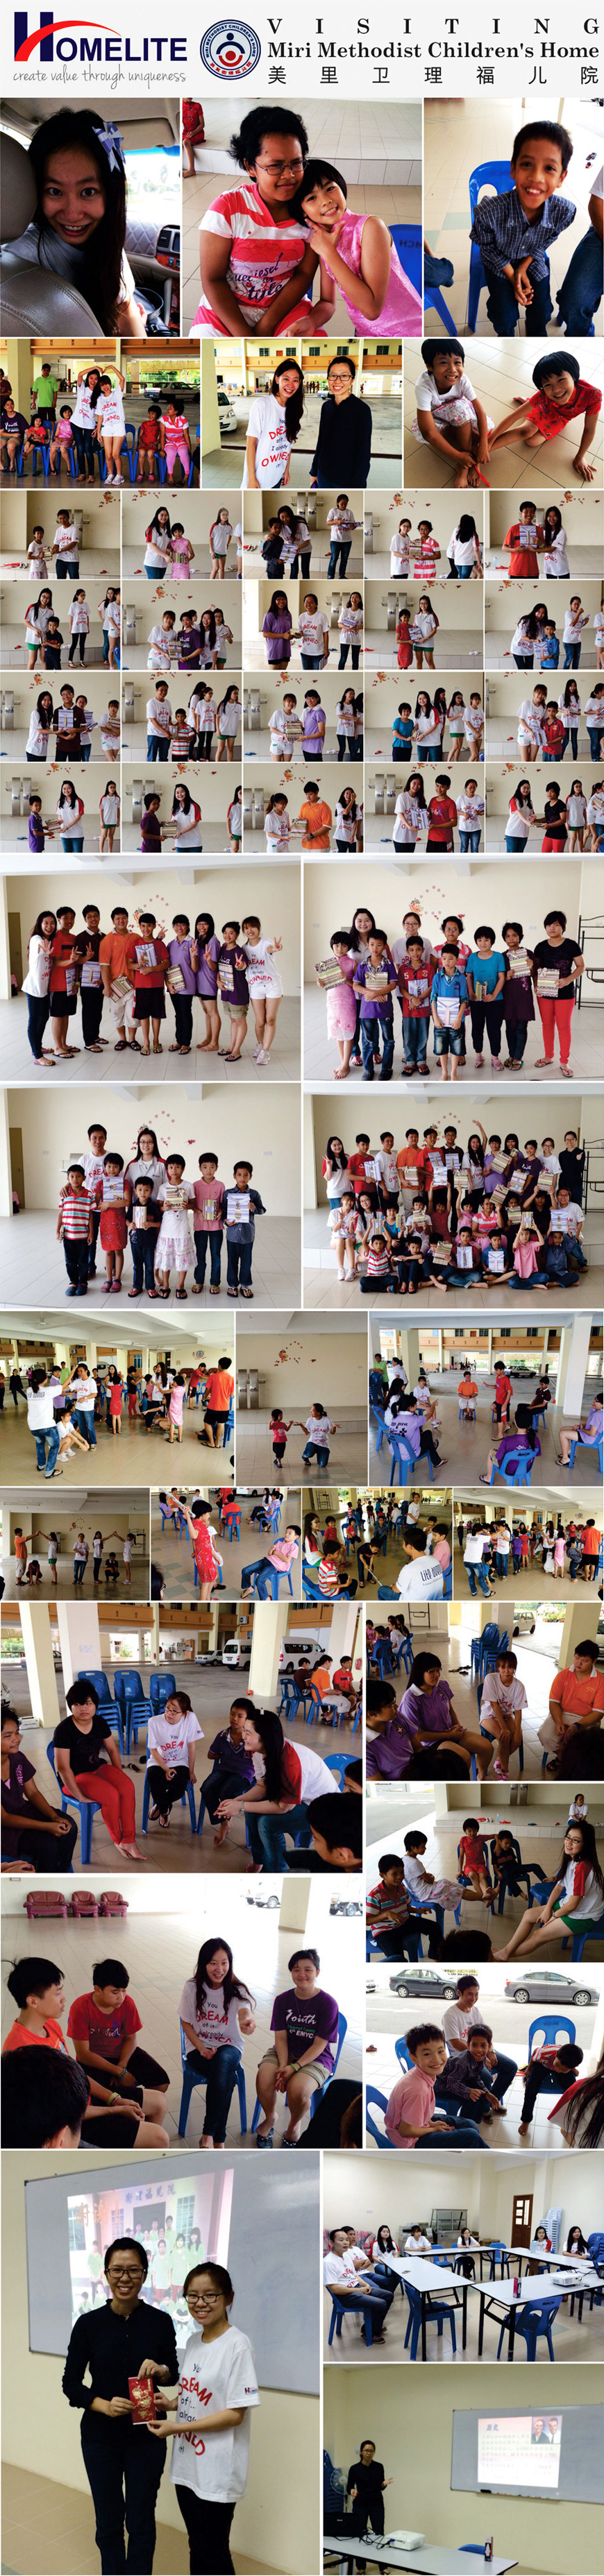 VISITING MIRI METHODIST CHILDRENS HOME